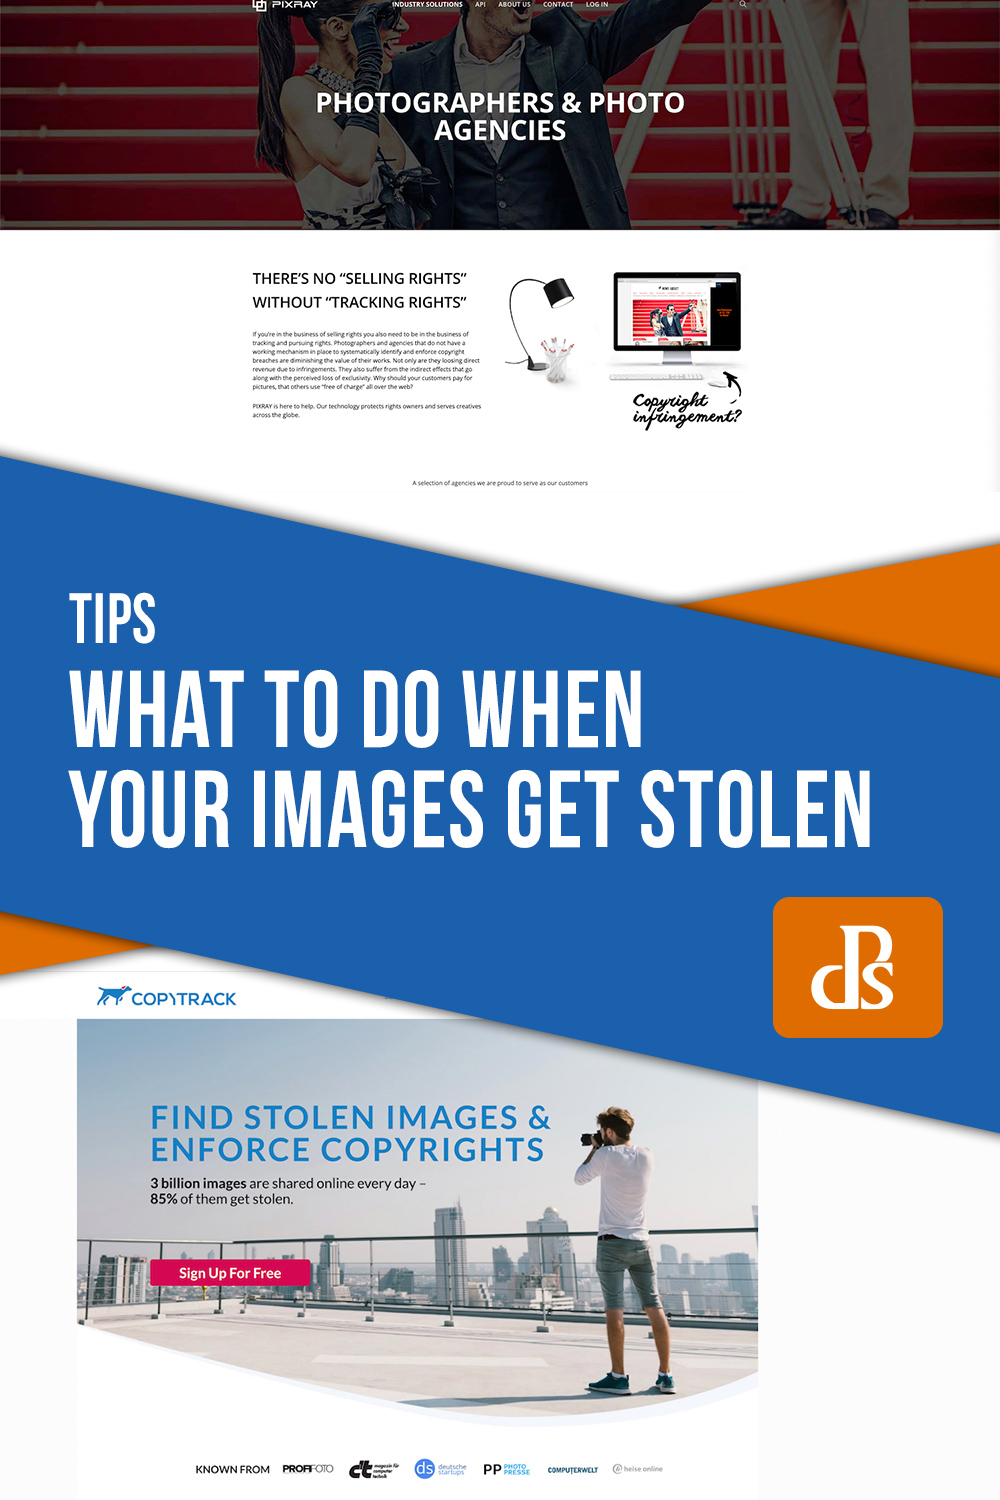 What to do if your images are stolen